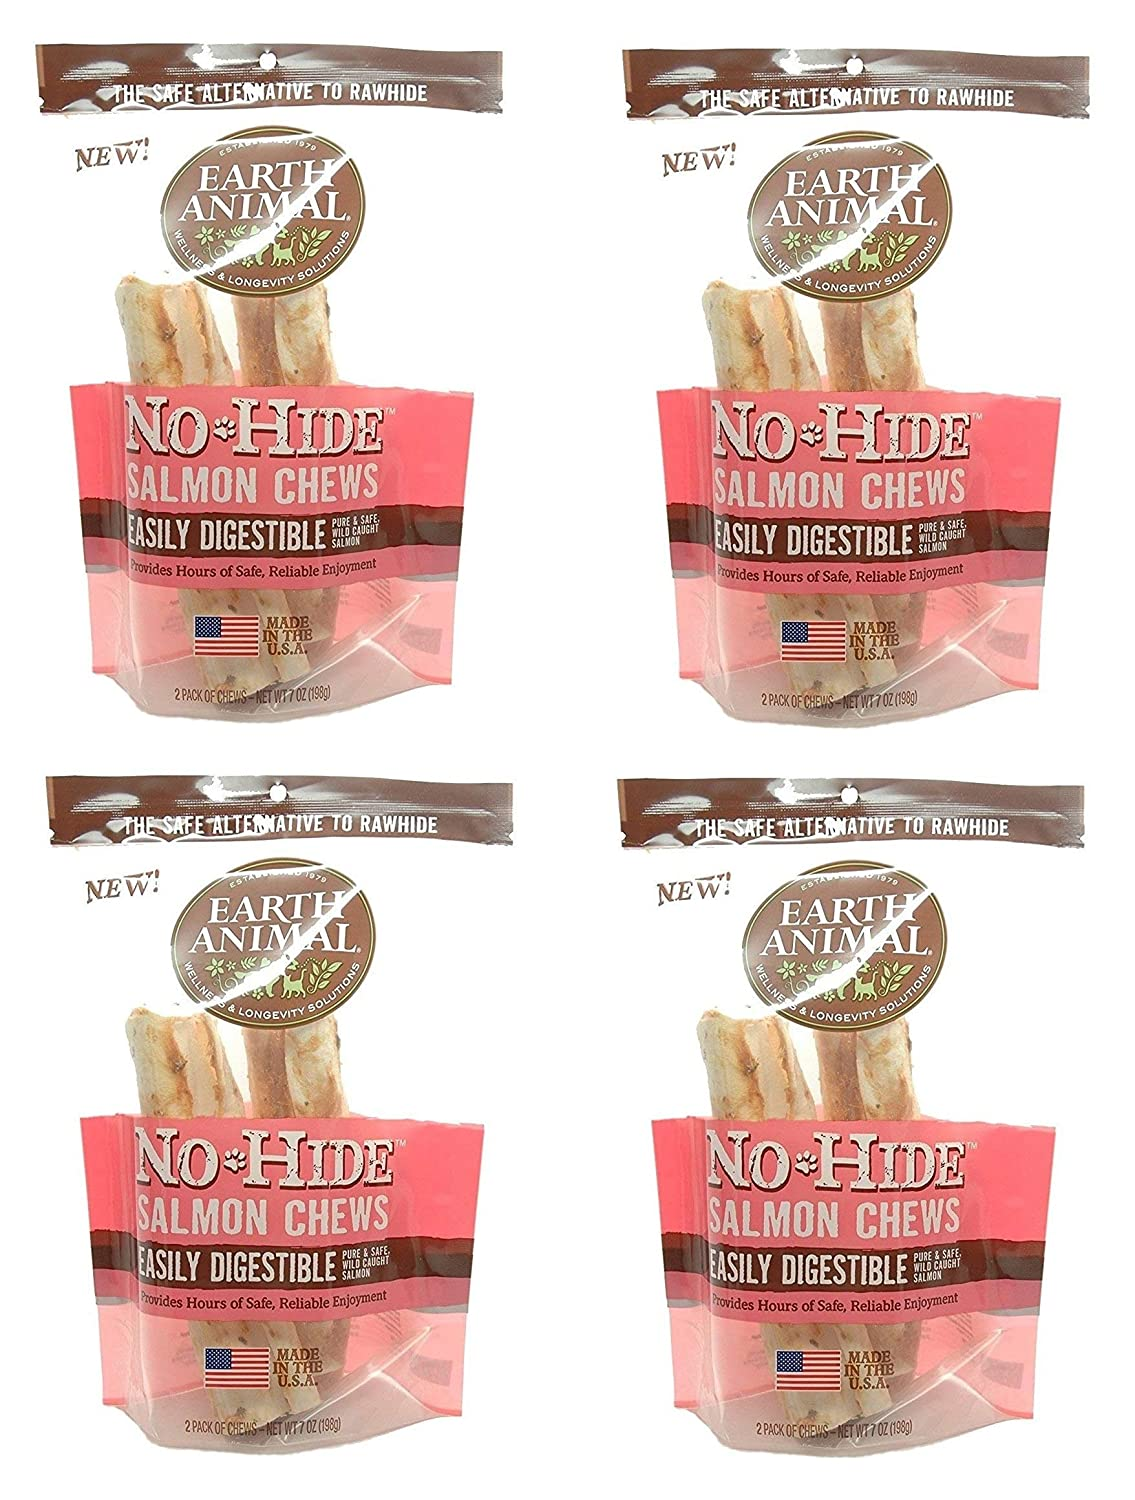 Earth Animal 8 Count No-Hide Salmon Chews, 4 Inches Each